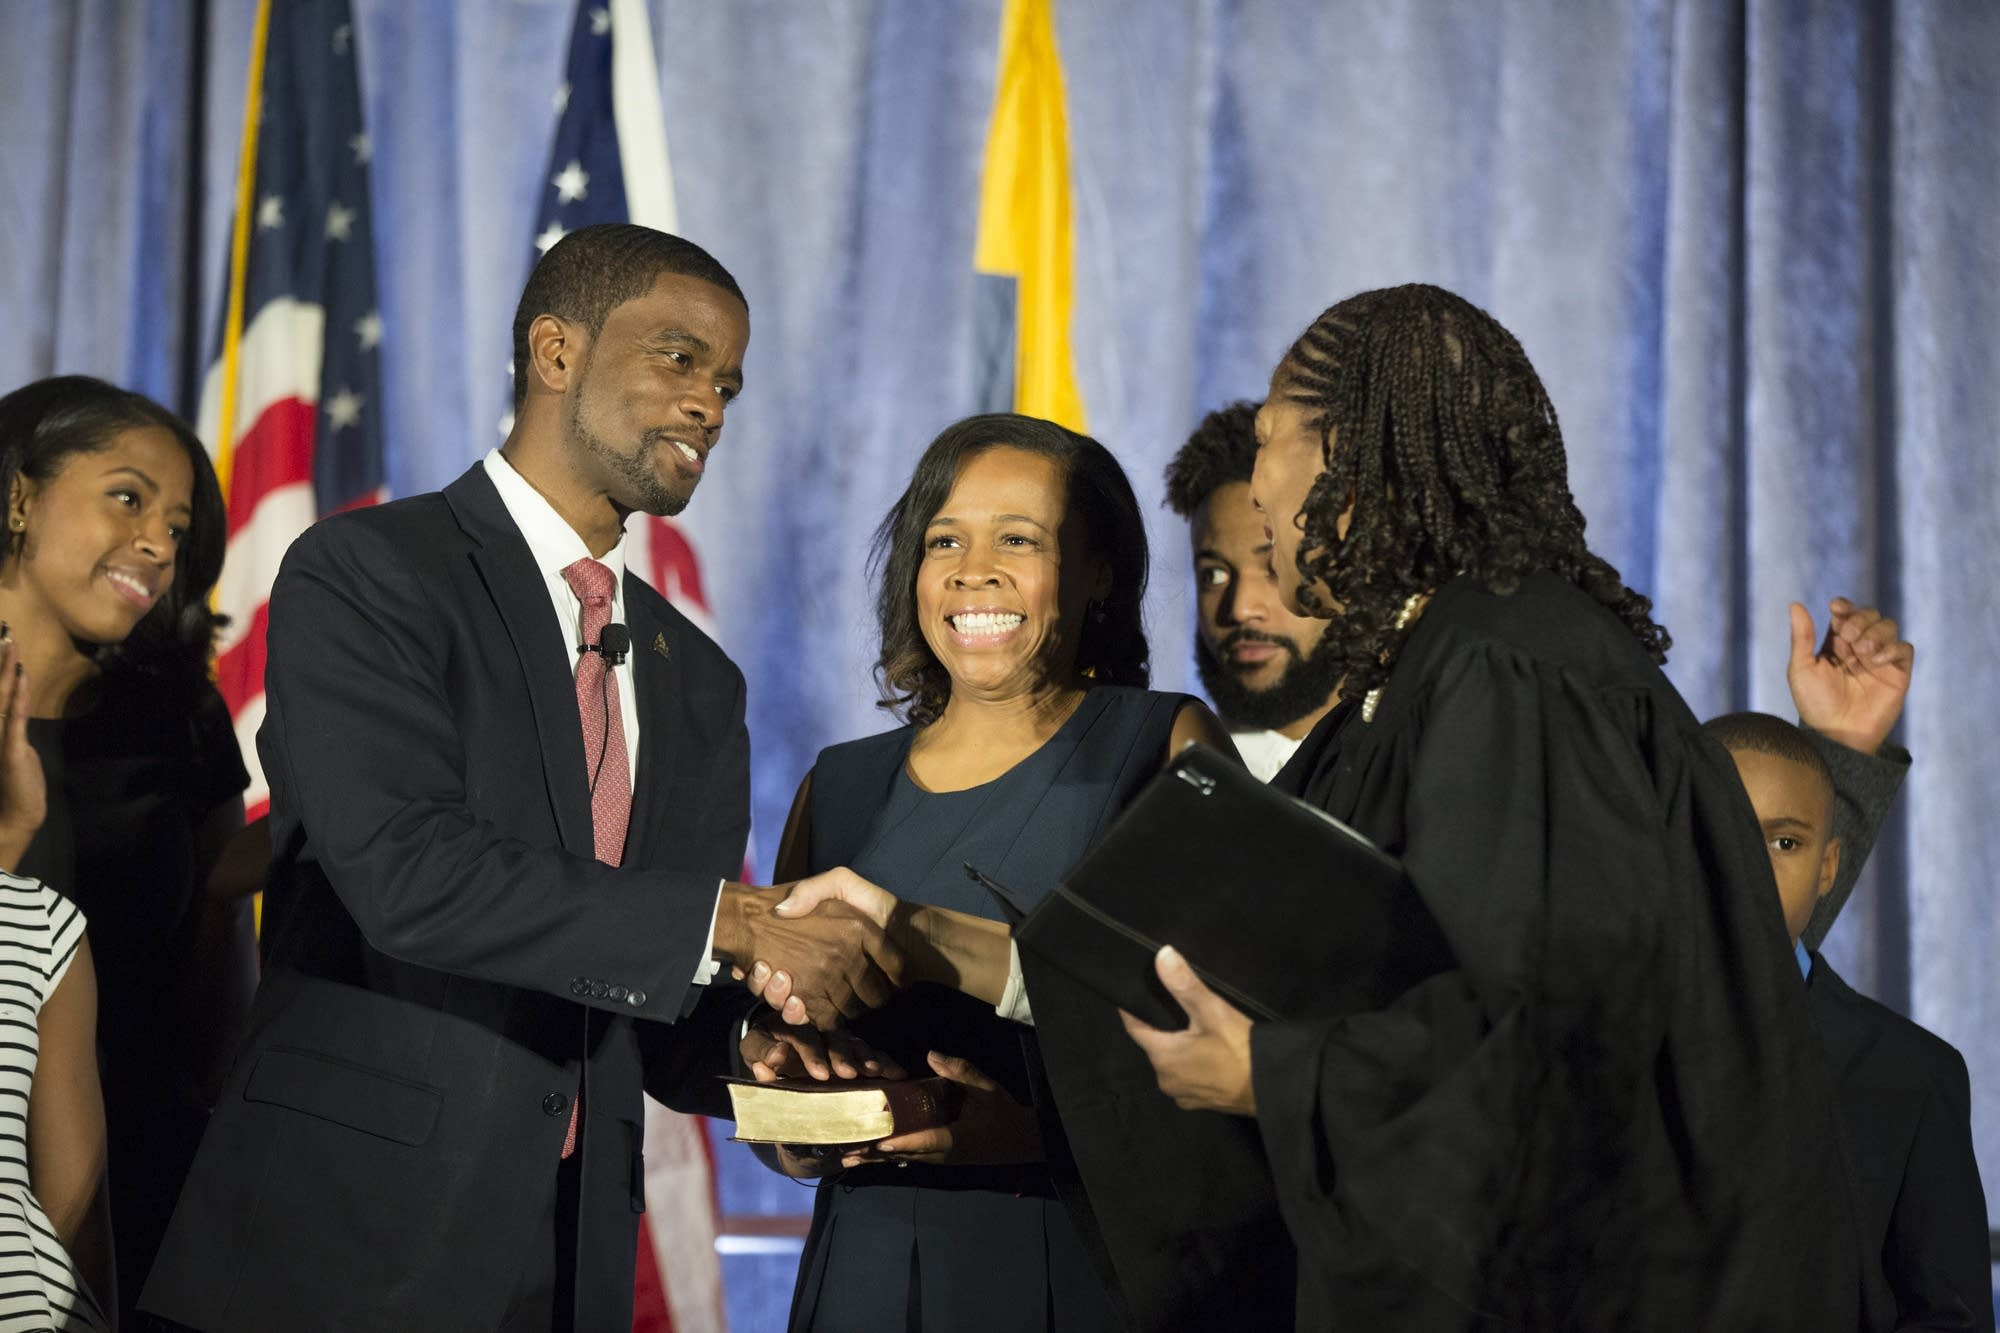 Melvin Carter takes the oath of office.